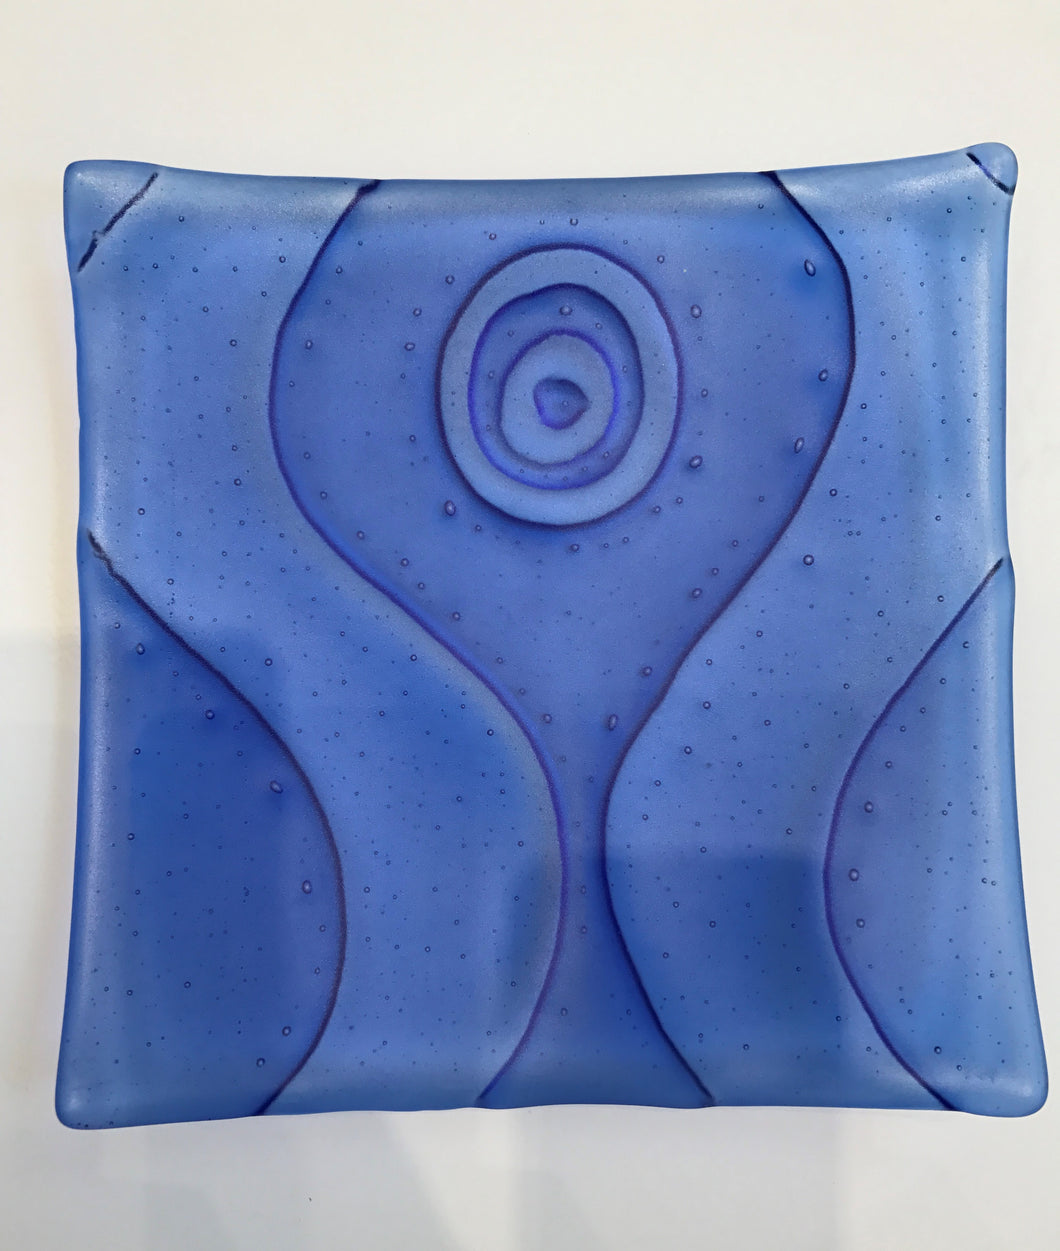 Texture Plate (Blue)